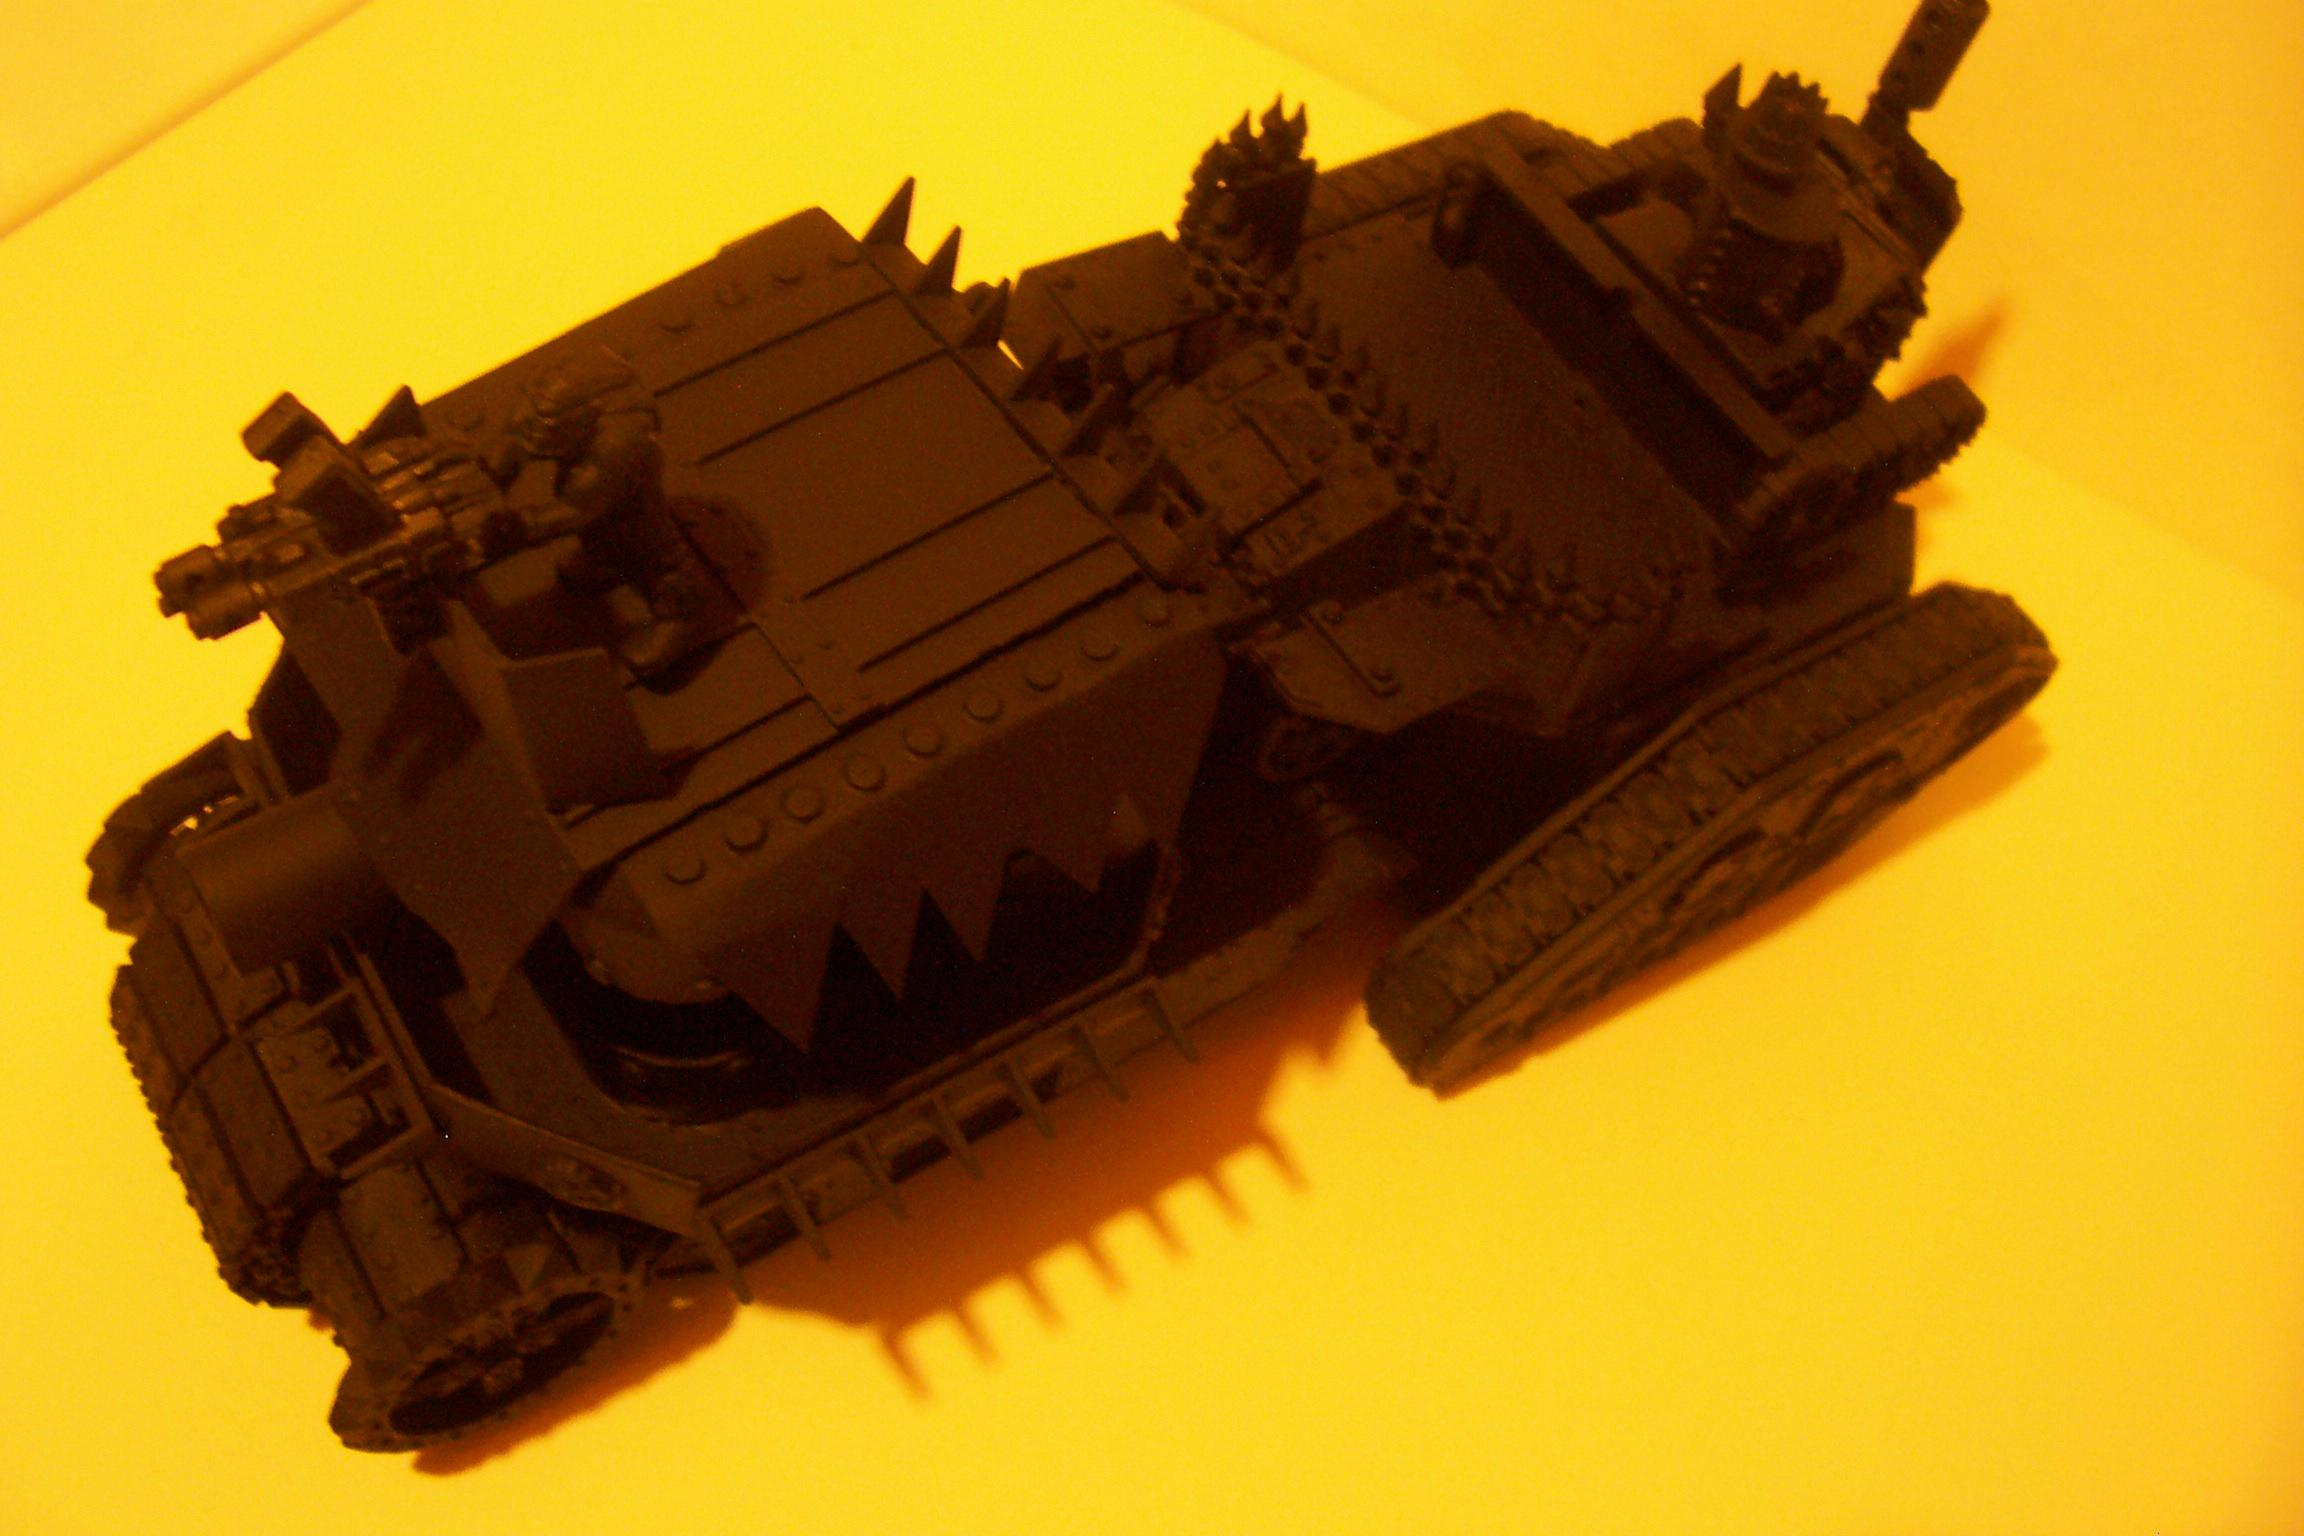 Battlewagon, Conversion, Deffrolla, Leman Russ, Looted, Orks, Primered, Tank, Vehicle, Warhammer 40,000